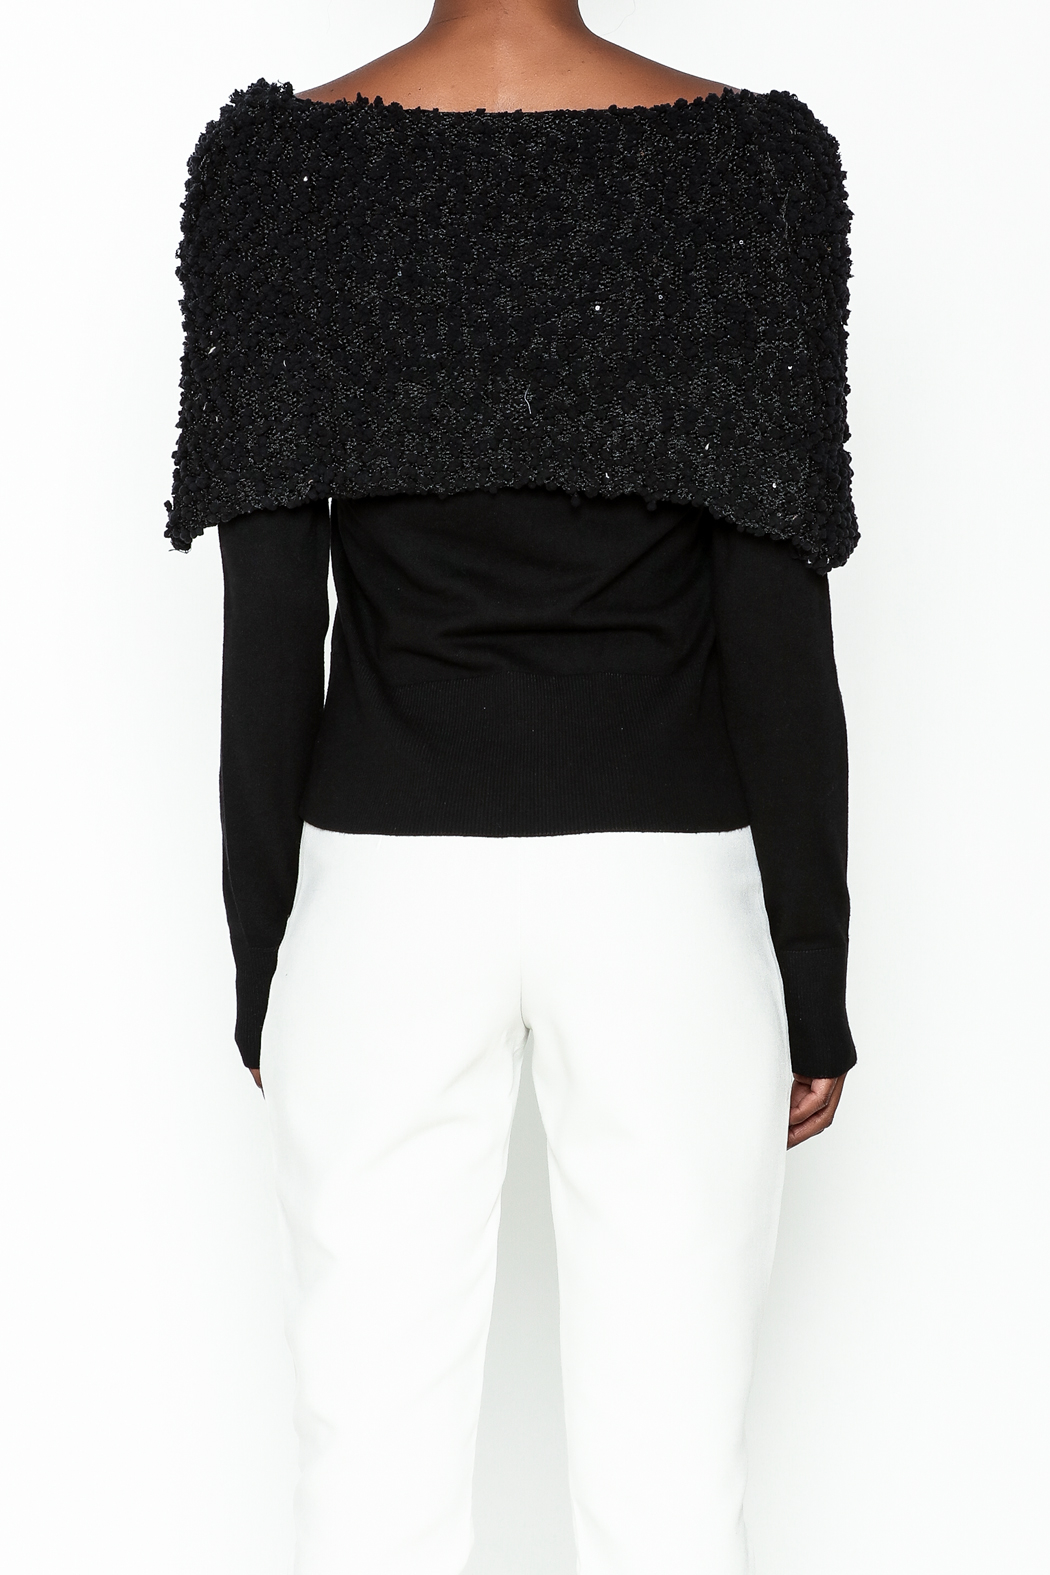 Charlie Paige Sparkle Collar Sweater - Back Cropped Image